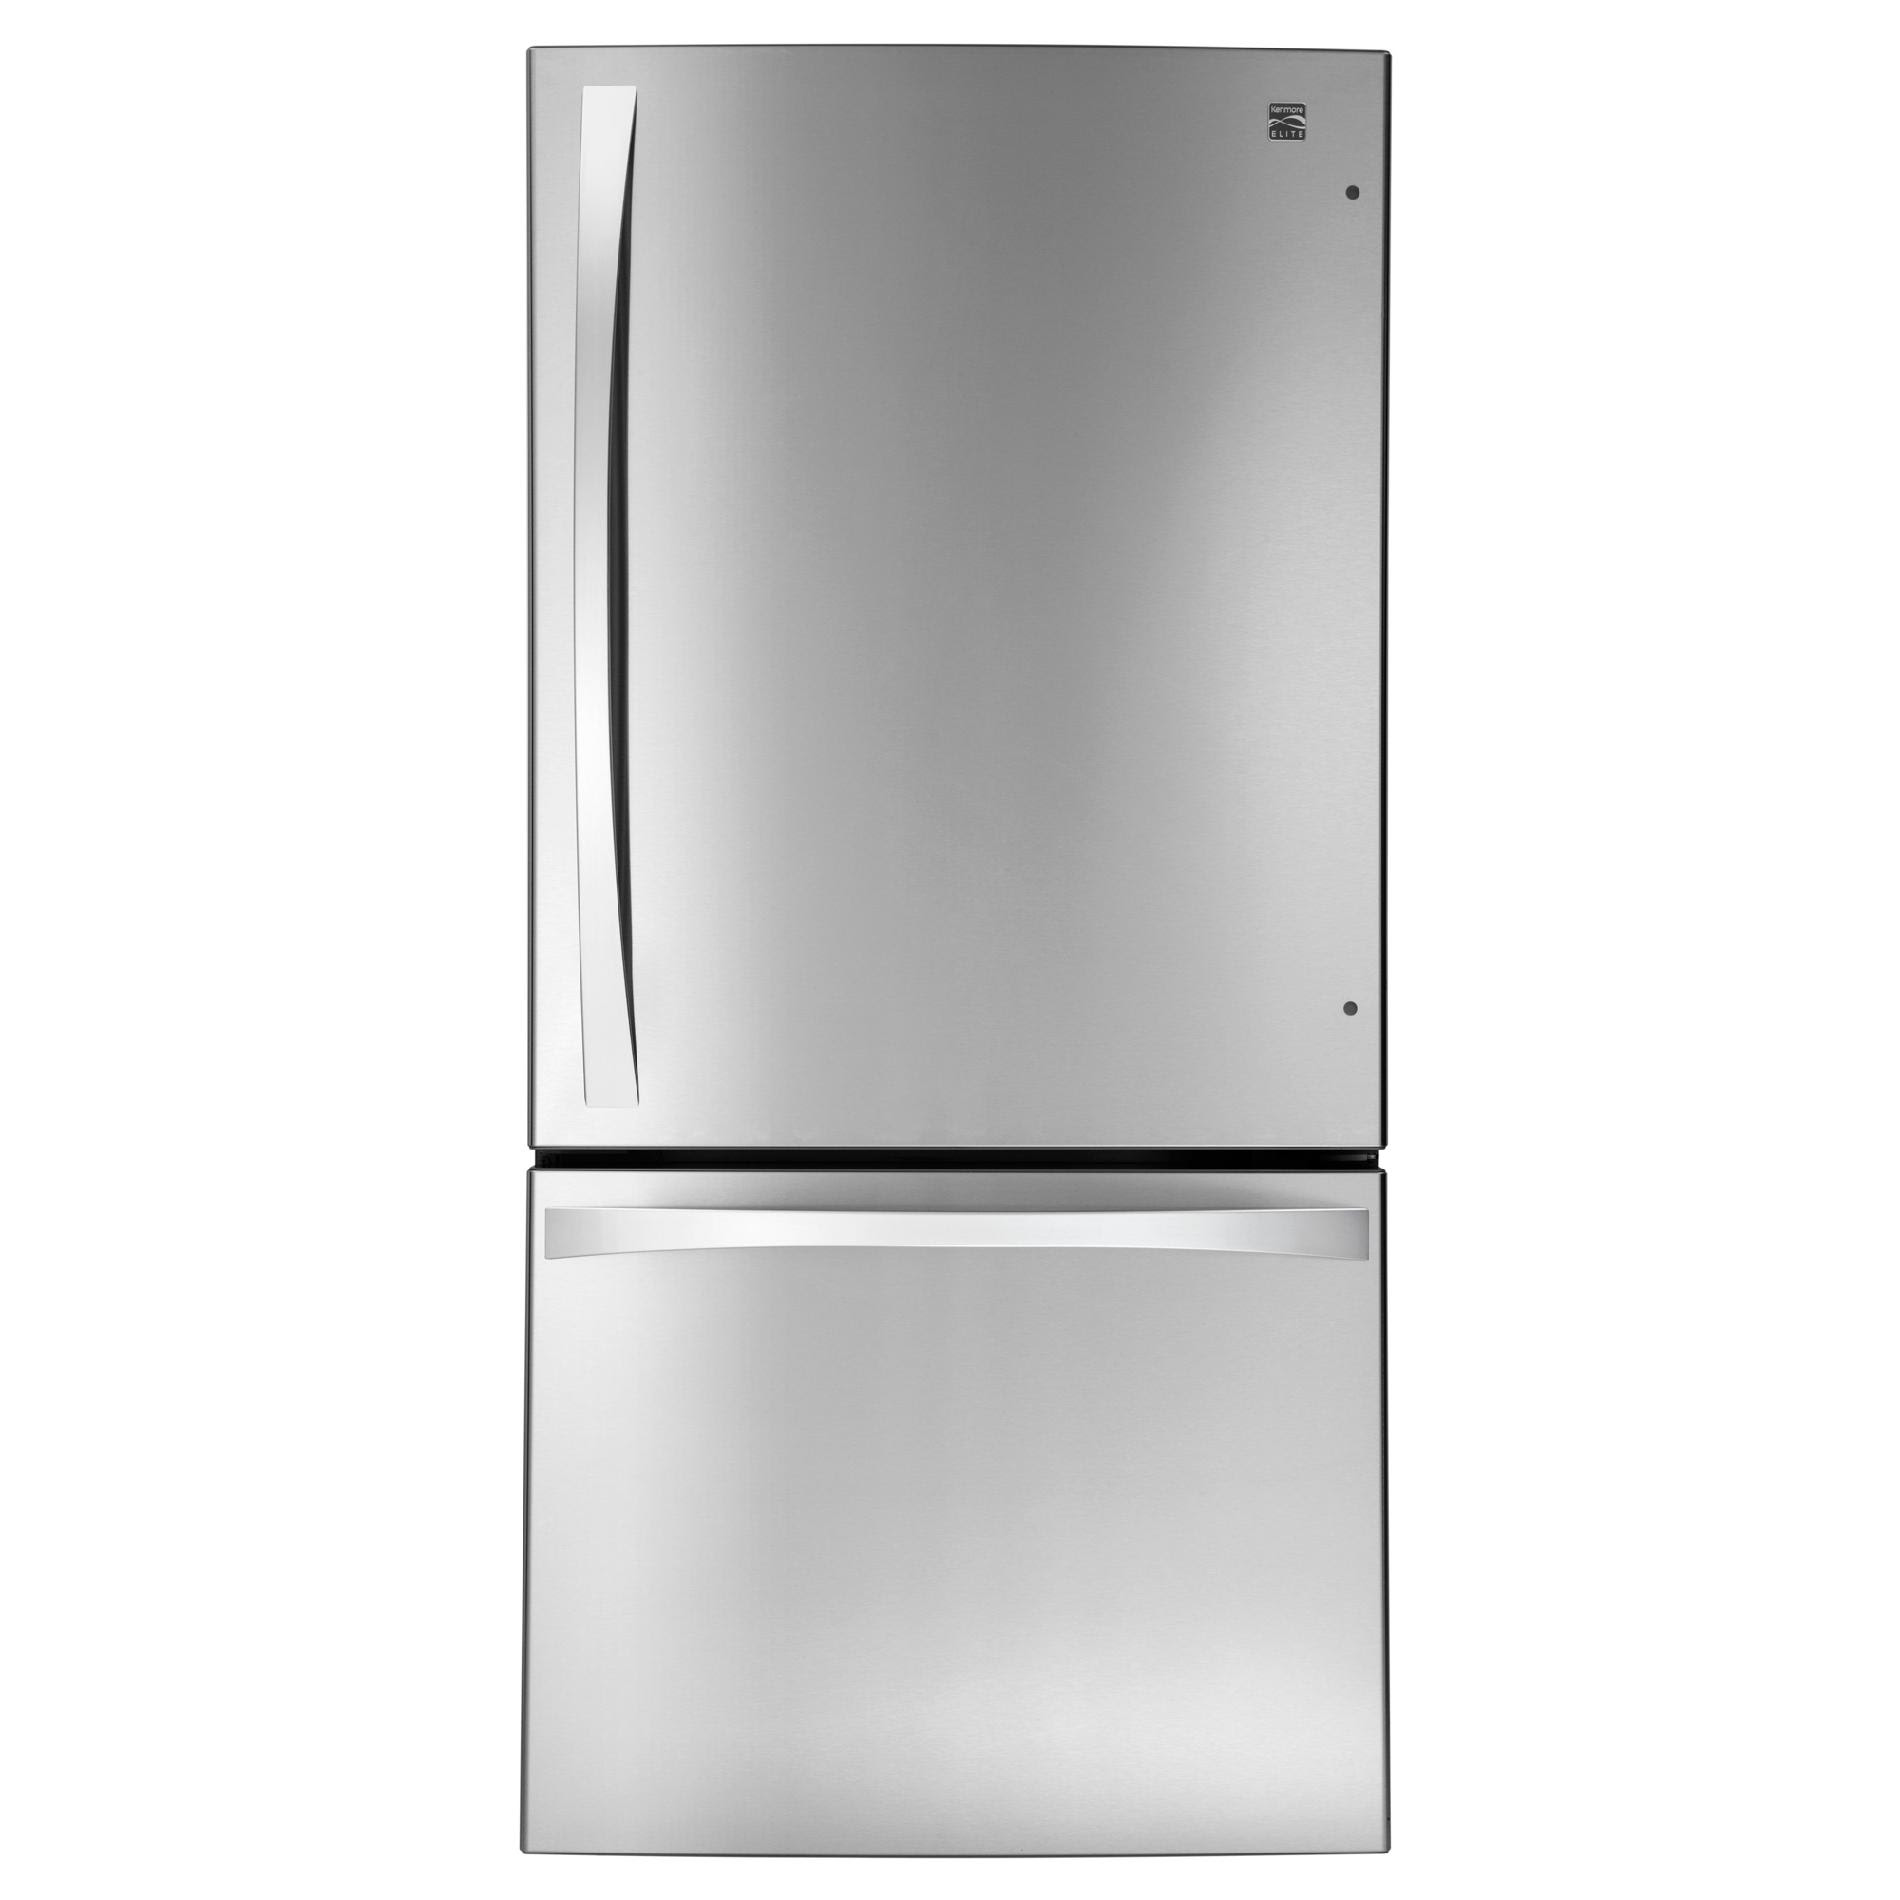 Kenmore Elite 24 1 cu ft Bottom Freezer Refrigerator